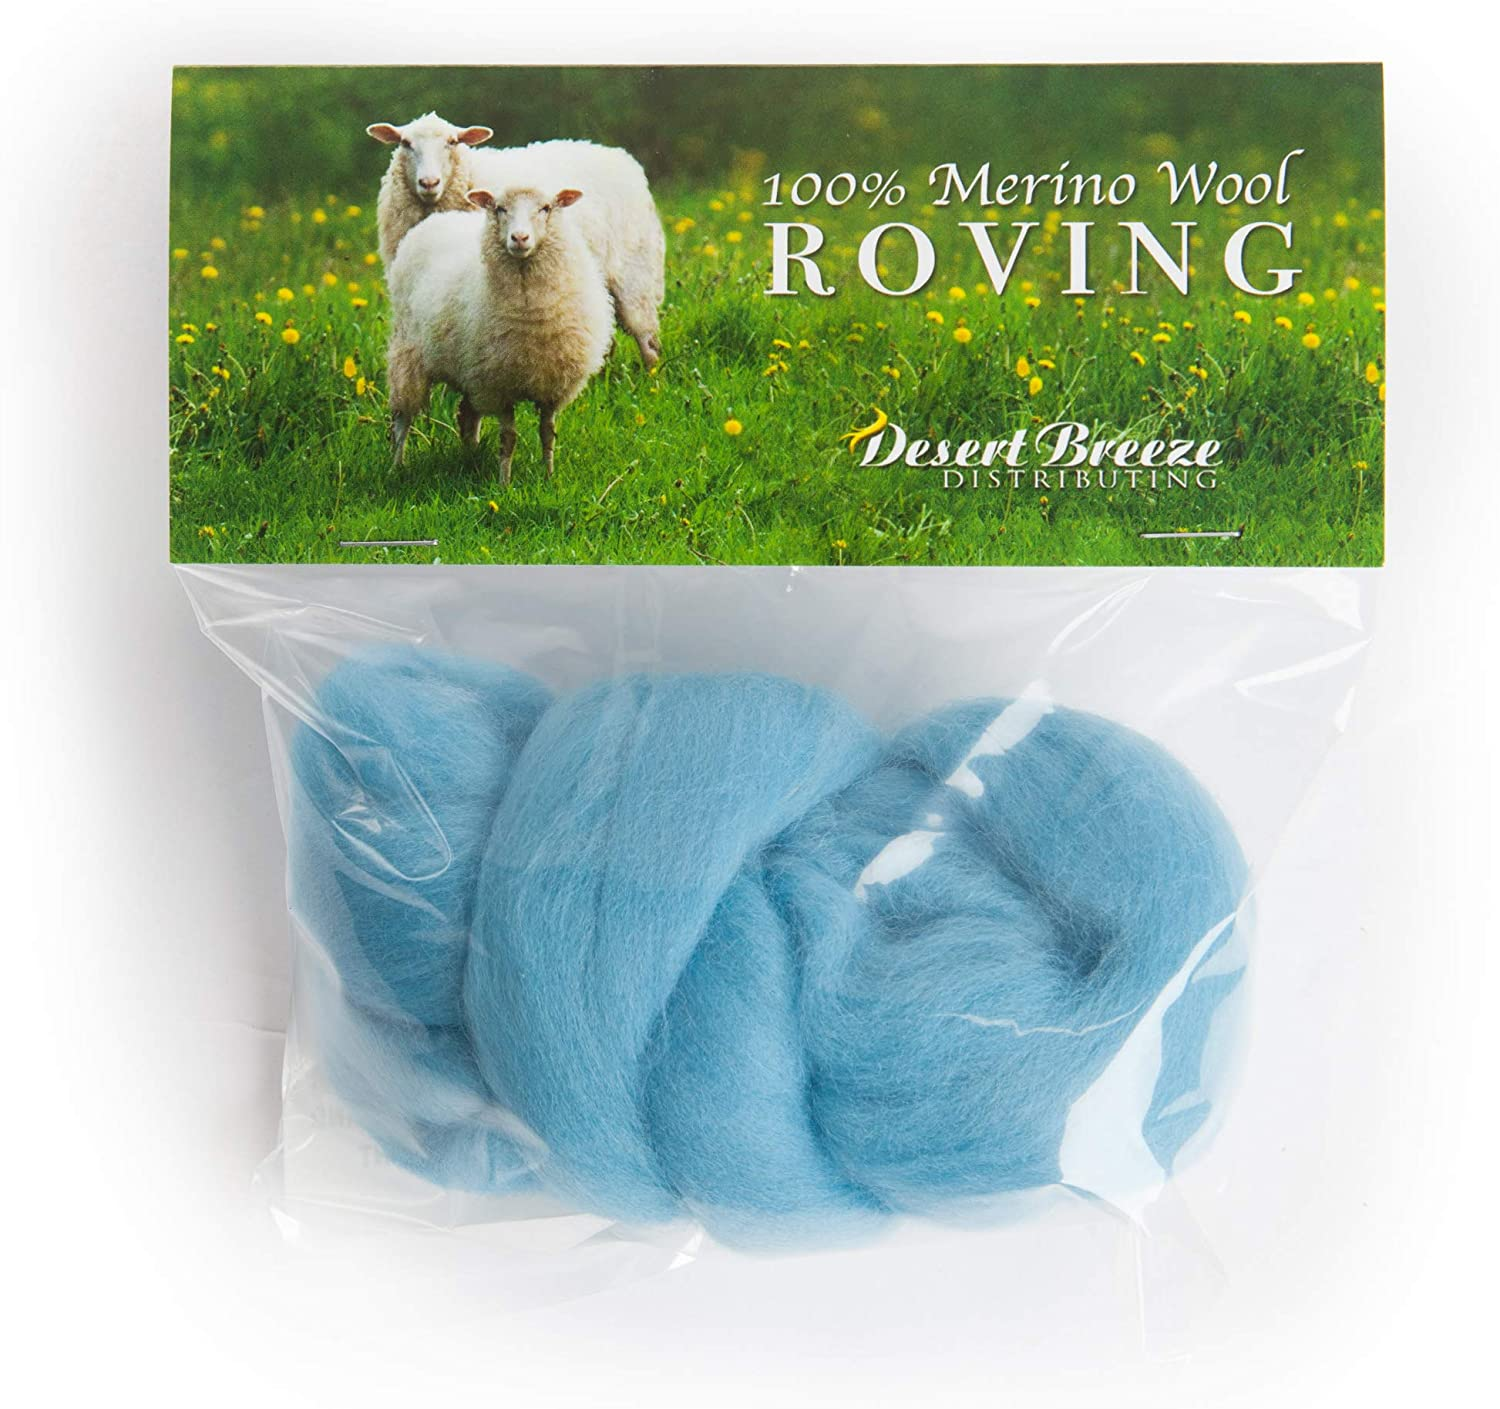 21 Micron Premium Combed Top Made in The UK Perfect for Felting Projects 100/% Pure Wool Color Seafoam Green Merino Wool Roving